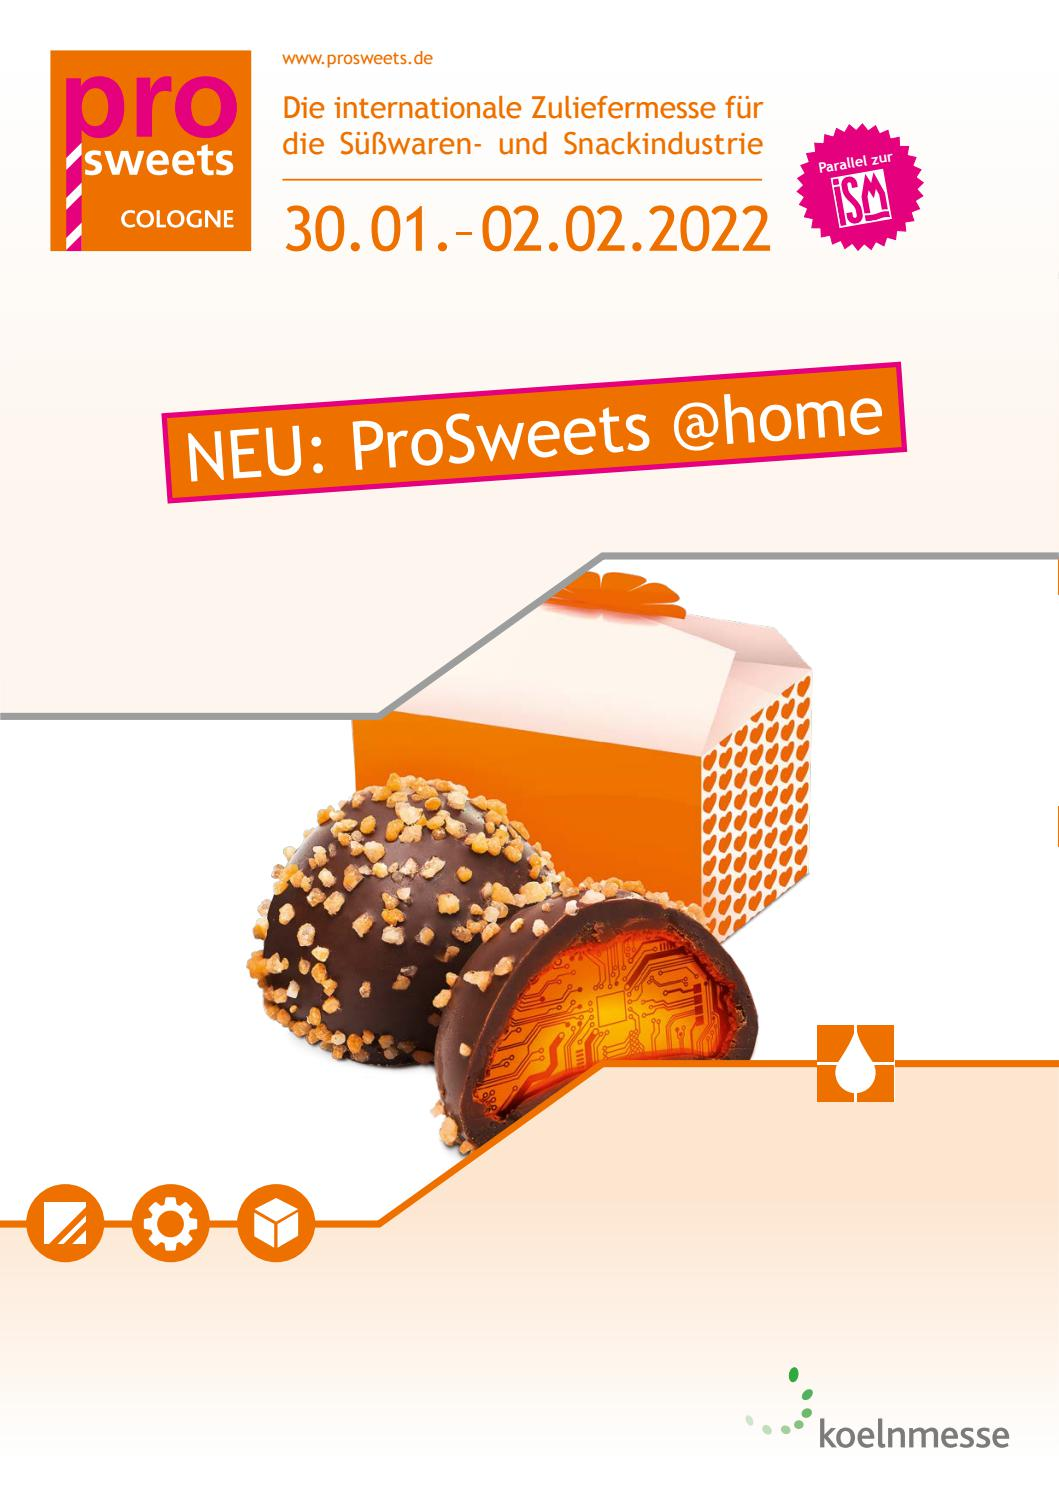 ProSweets Cologne Salesfolder DE by Koelnmesse GmbH - issuu